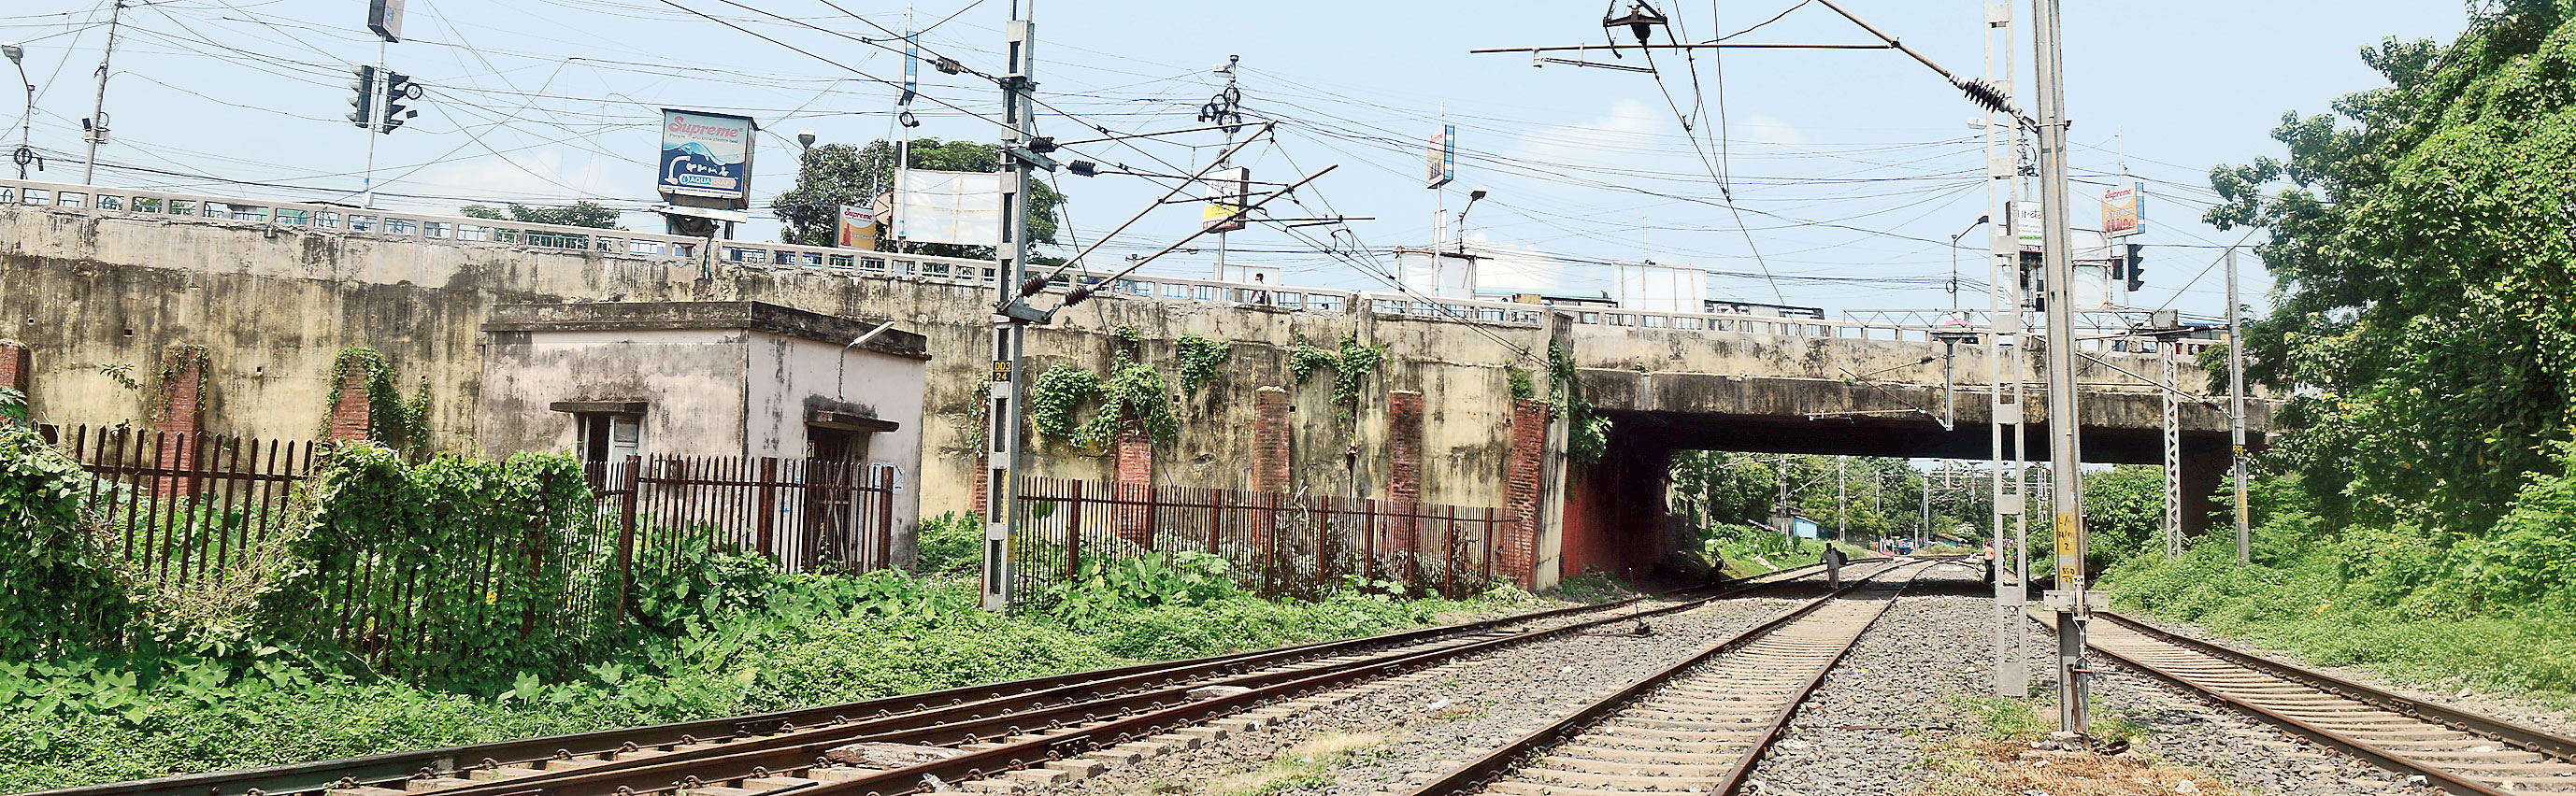 The existing bridge, a key link between Calcutta and parts of North 24-Parganas, has lost much of its load-bearing capacity and needs to be pulled down, according to engineers who have inspected the 57-year-old structure.